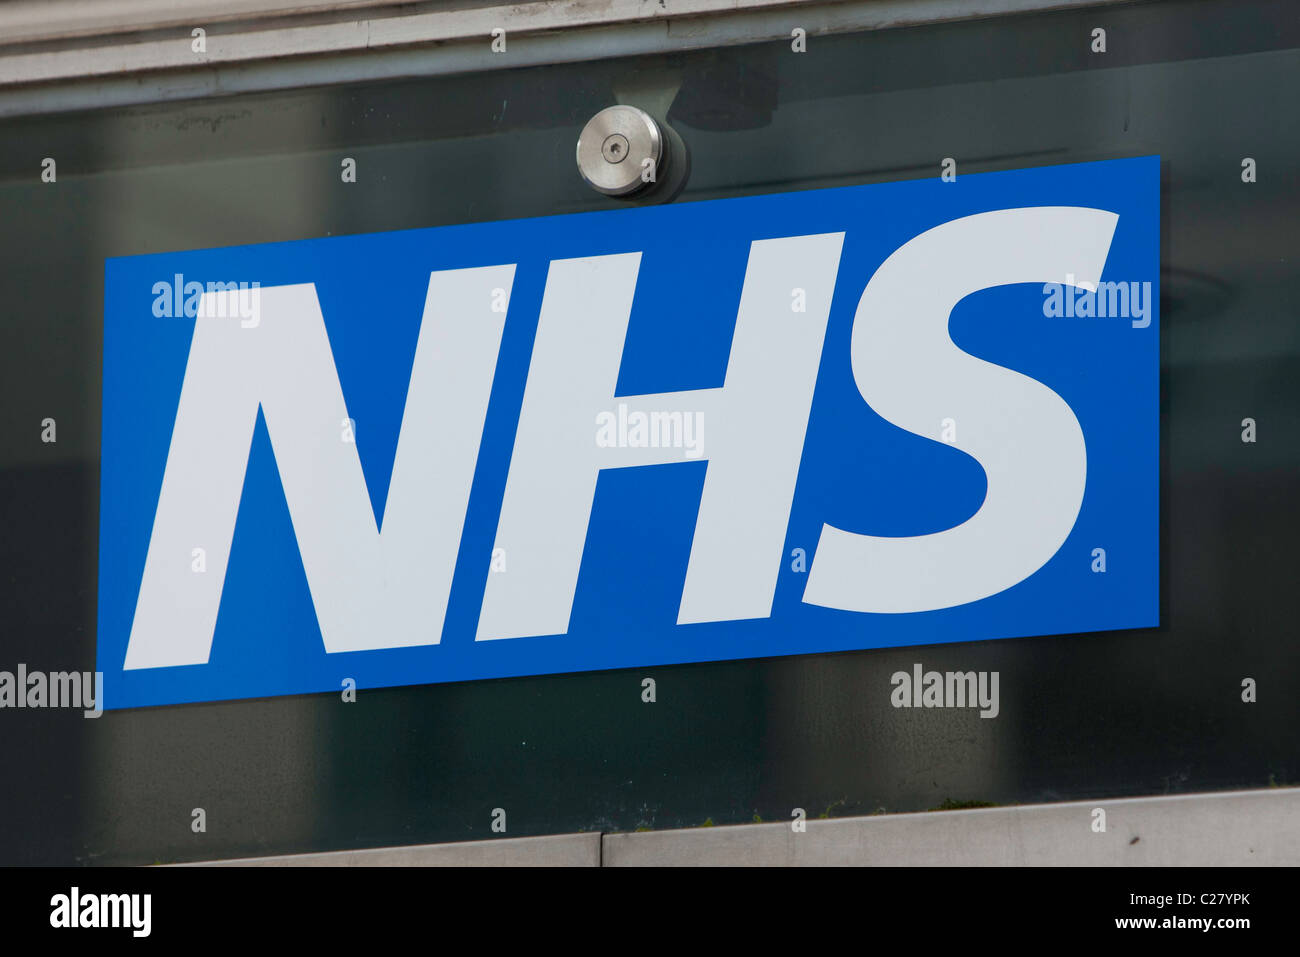 The NHS sign. - Stock Image